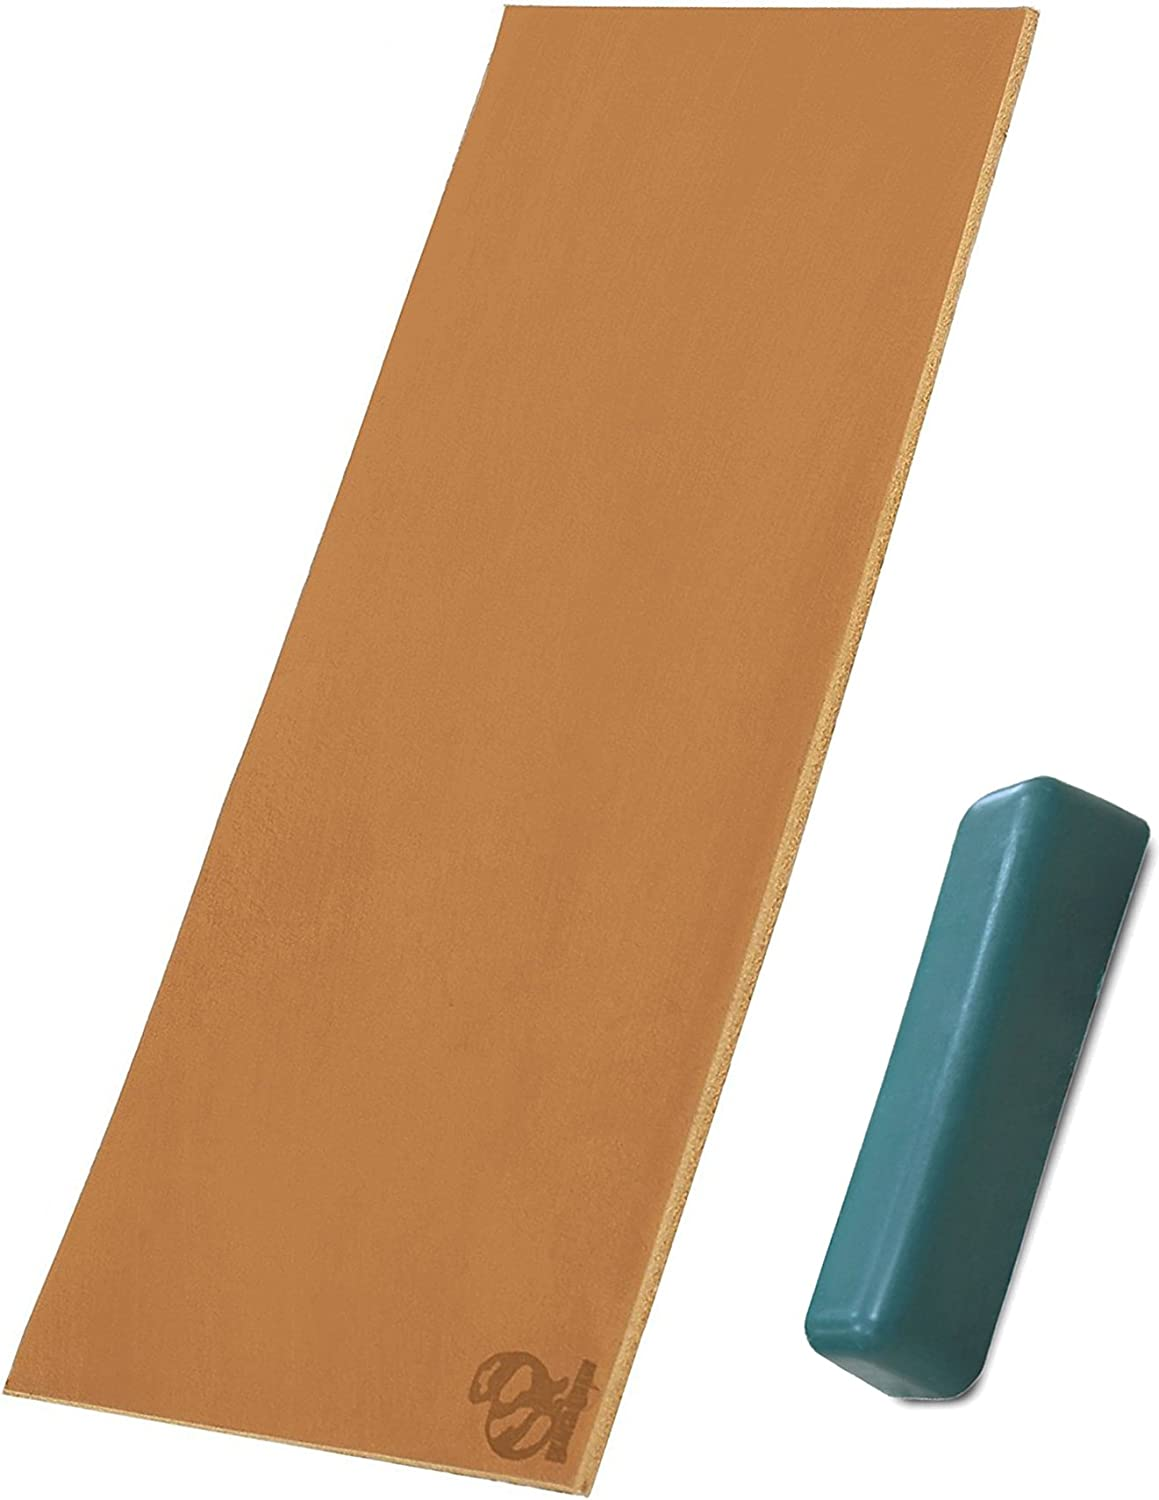 Leather strop Sharpening leather honing strop kit 3 x 8 Inch stropping leather